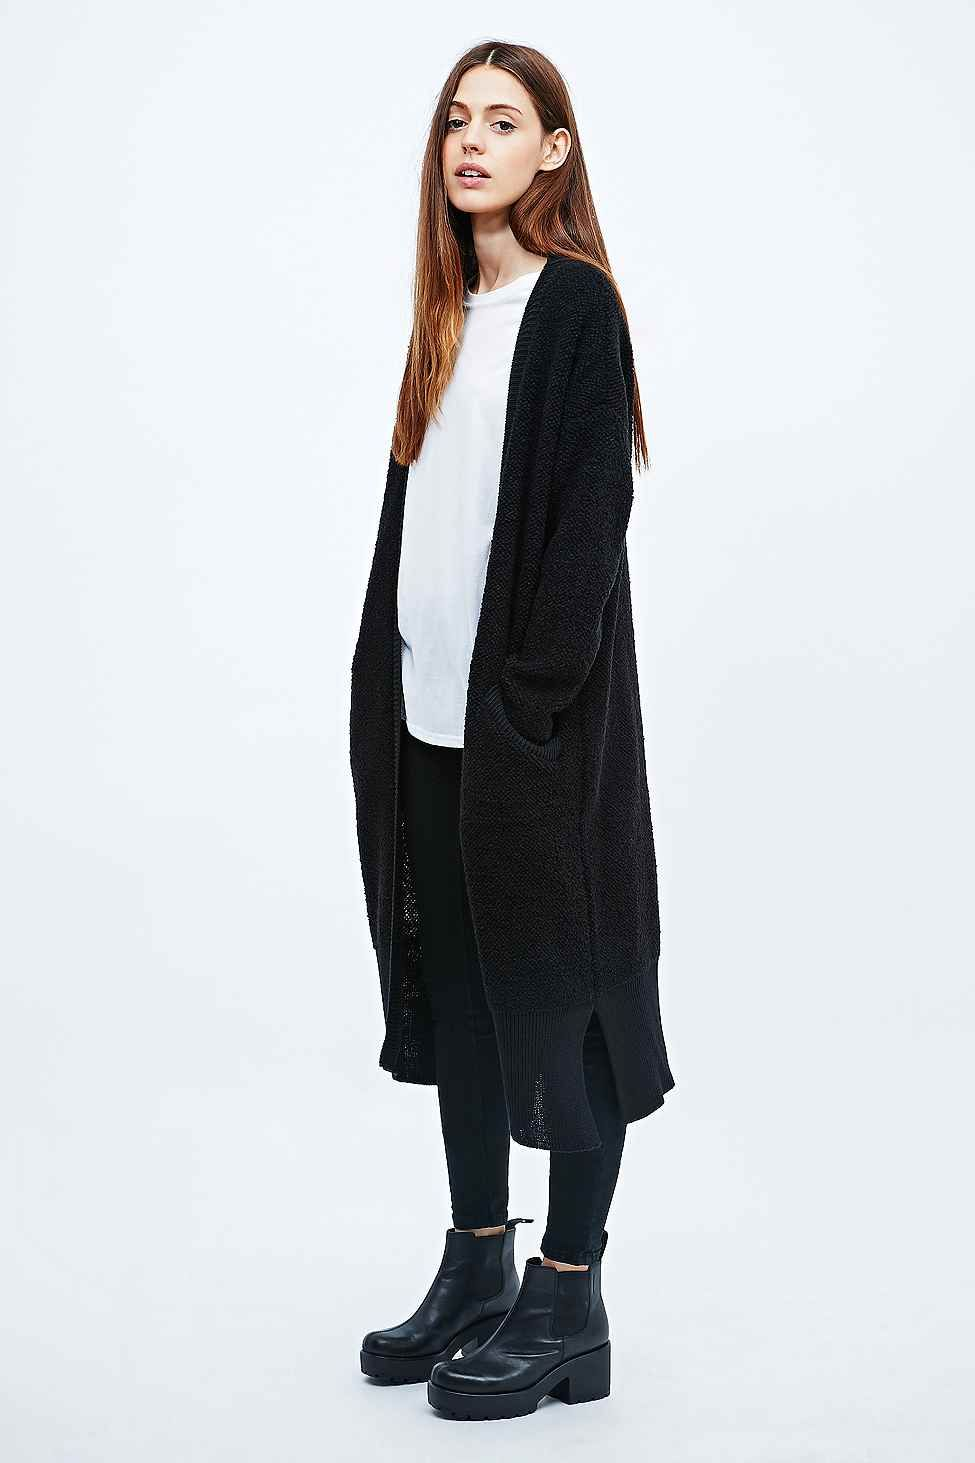 Sparkle & Fade Maxi Detail Cardigan in Black - Urban Outfitters ...